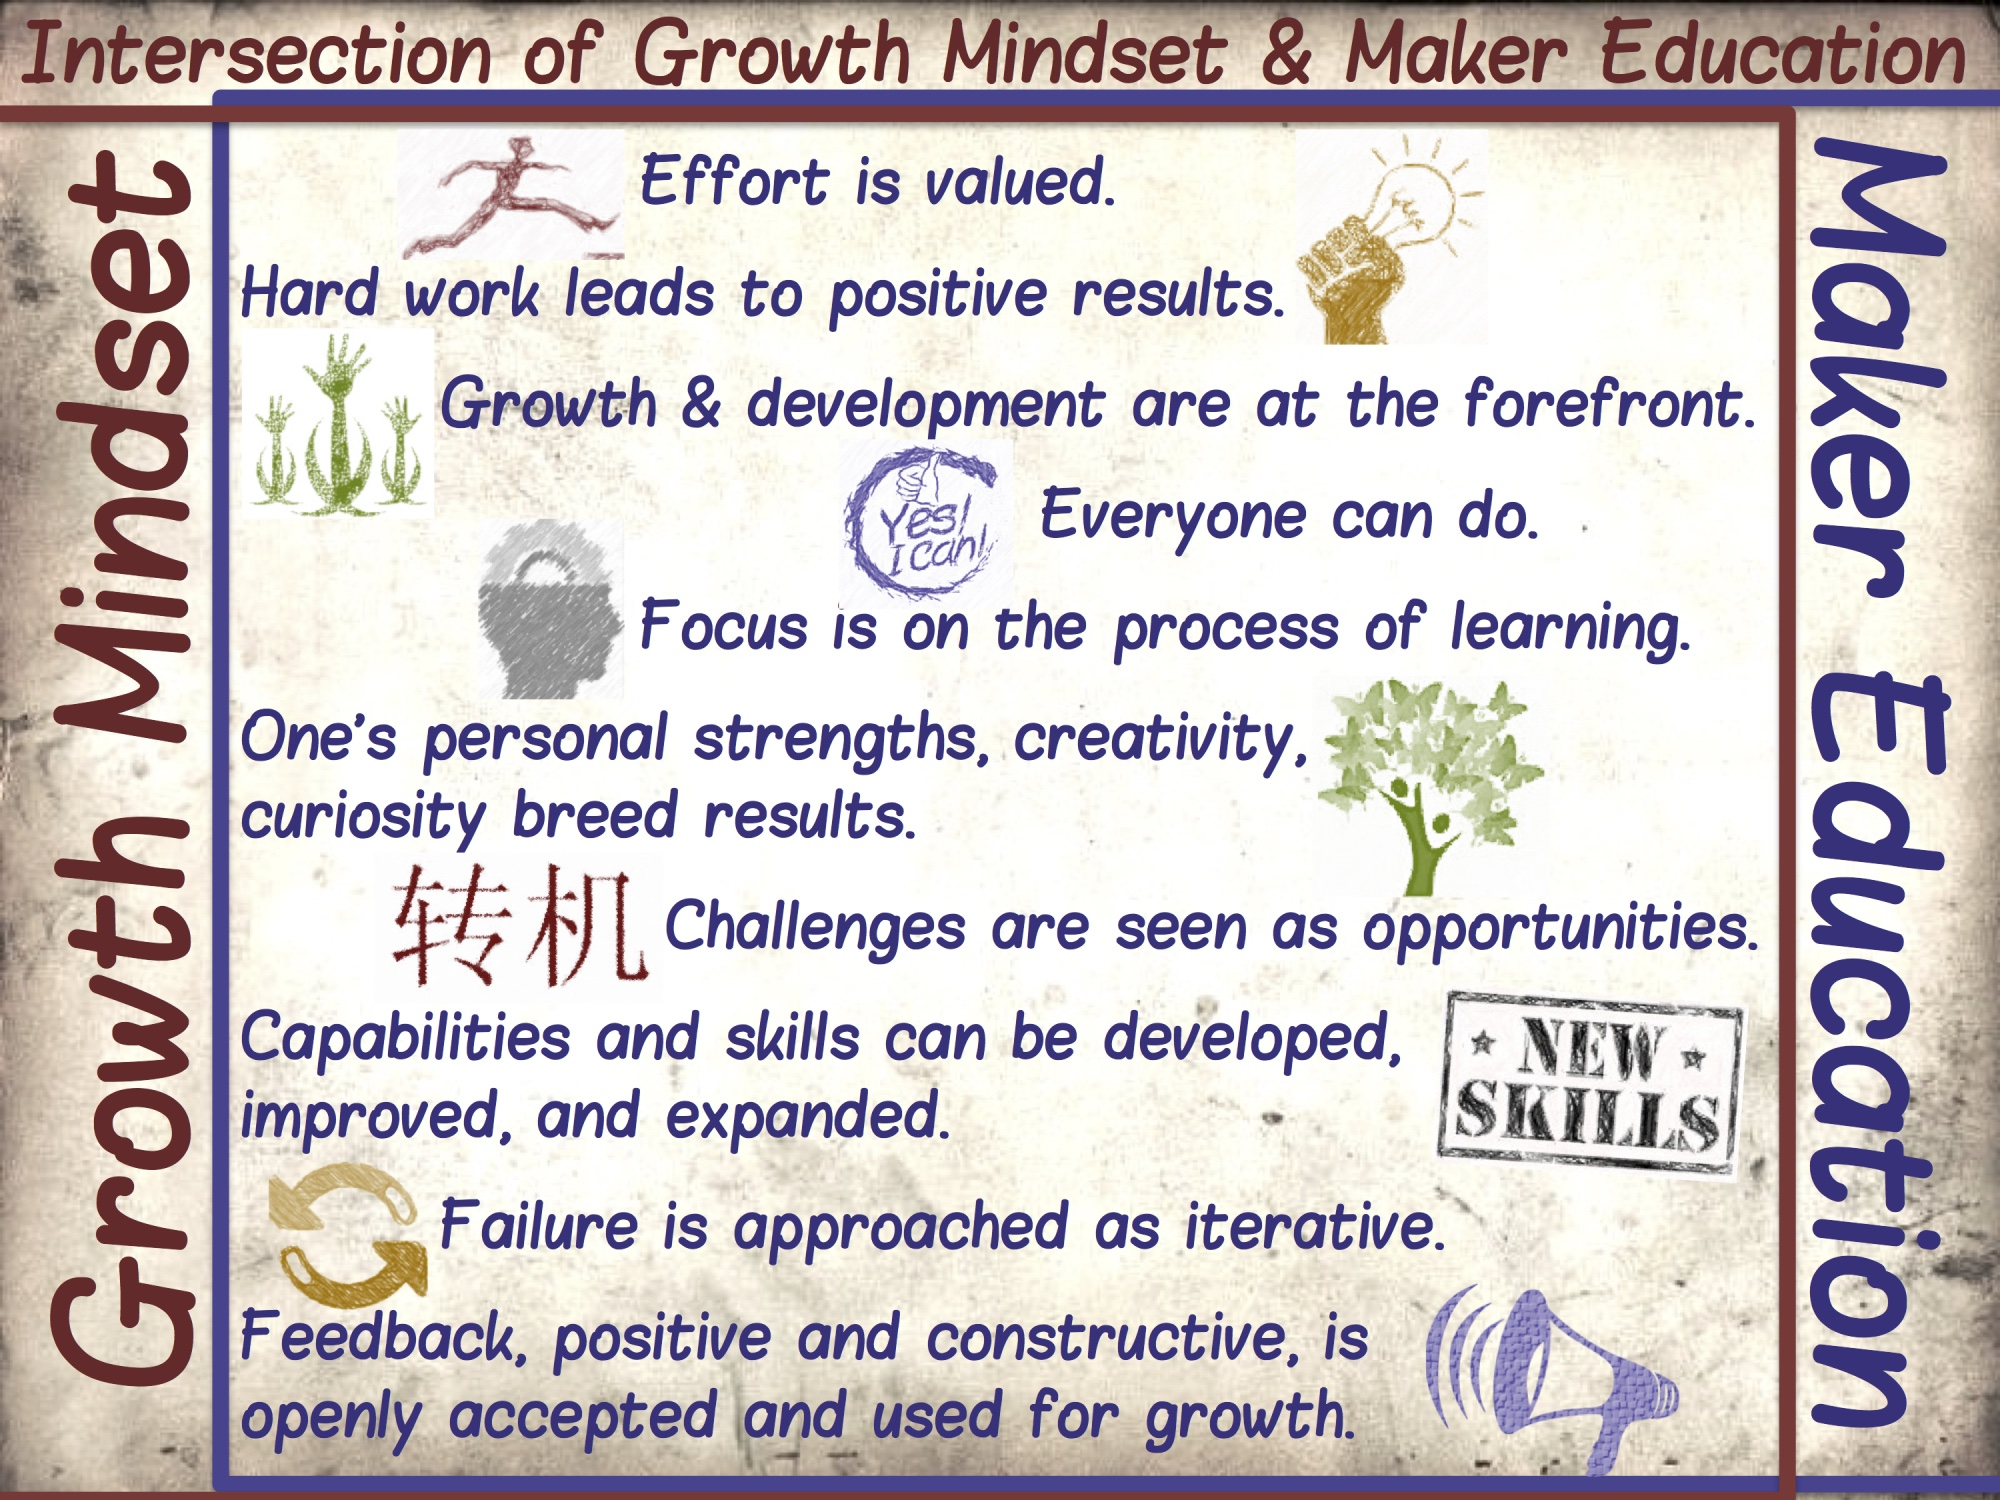 intersection-of-growth-mindset-and-maker-education.jpg